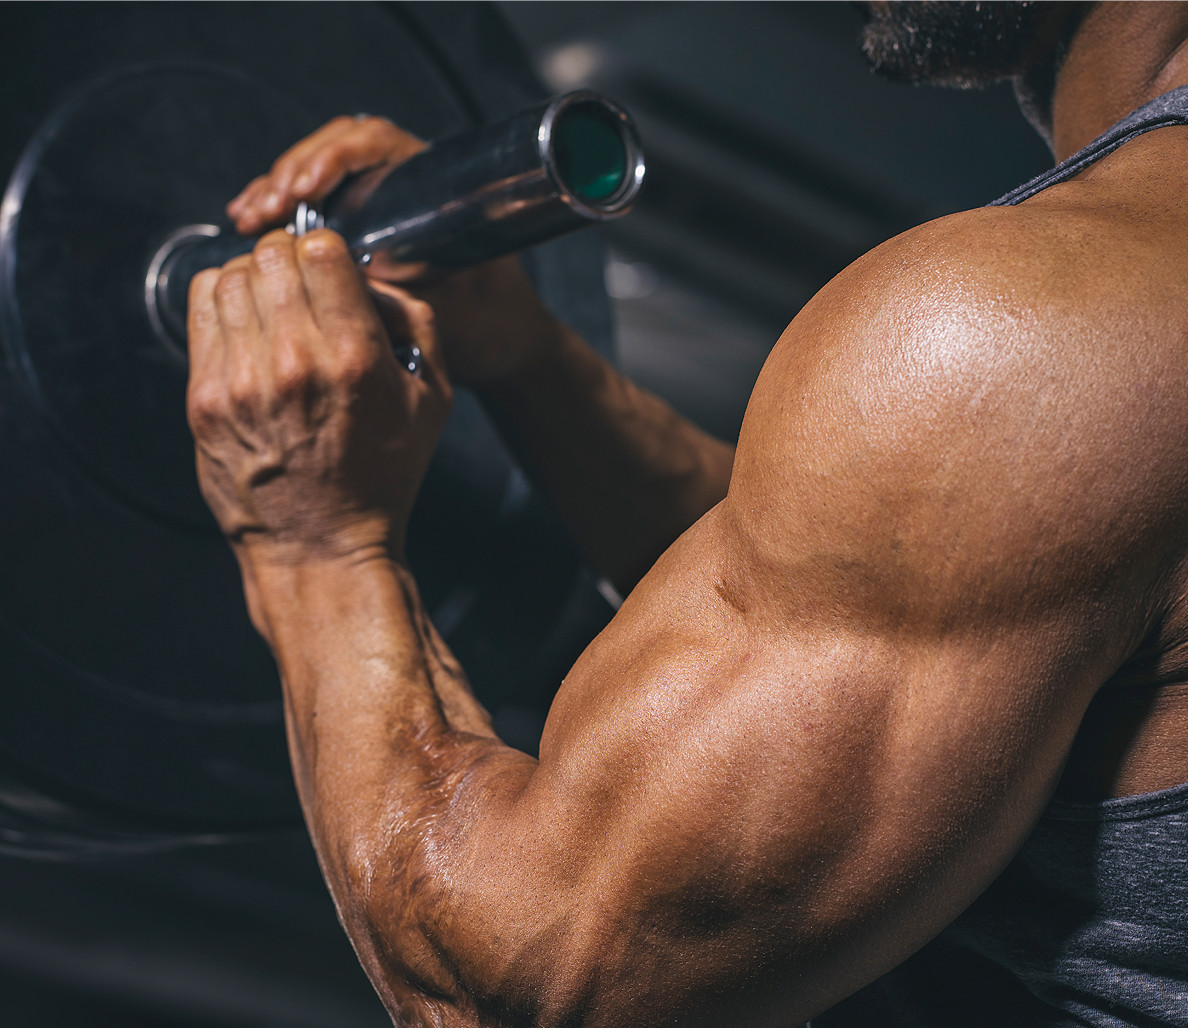 Buy Best Hgh Bodybuilding Supplements